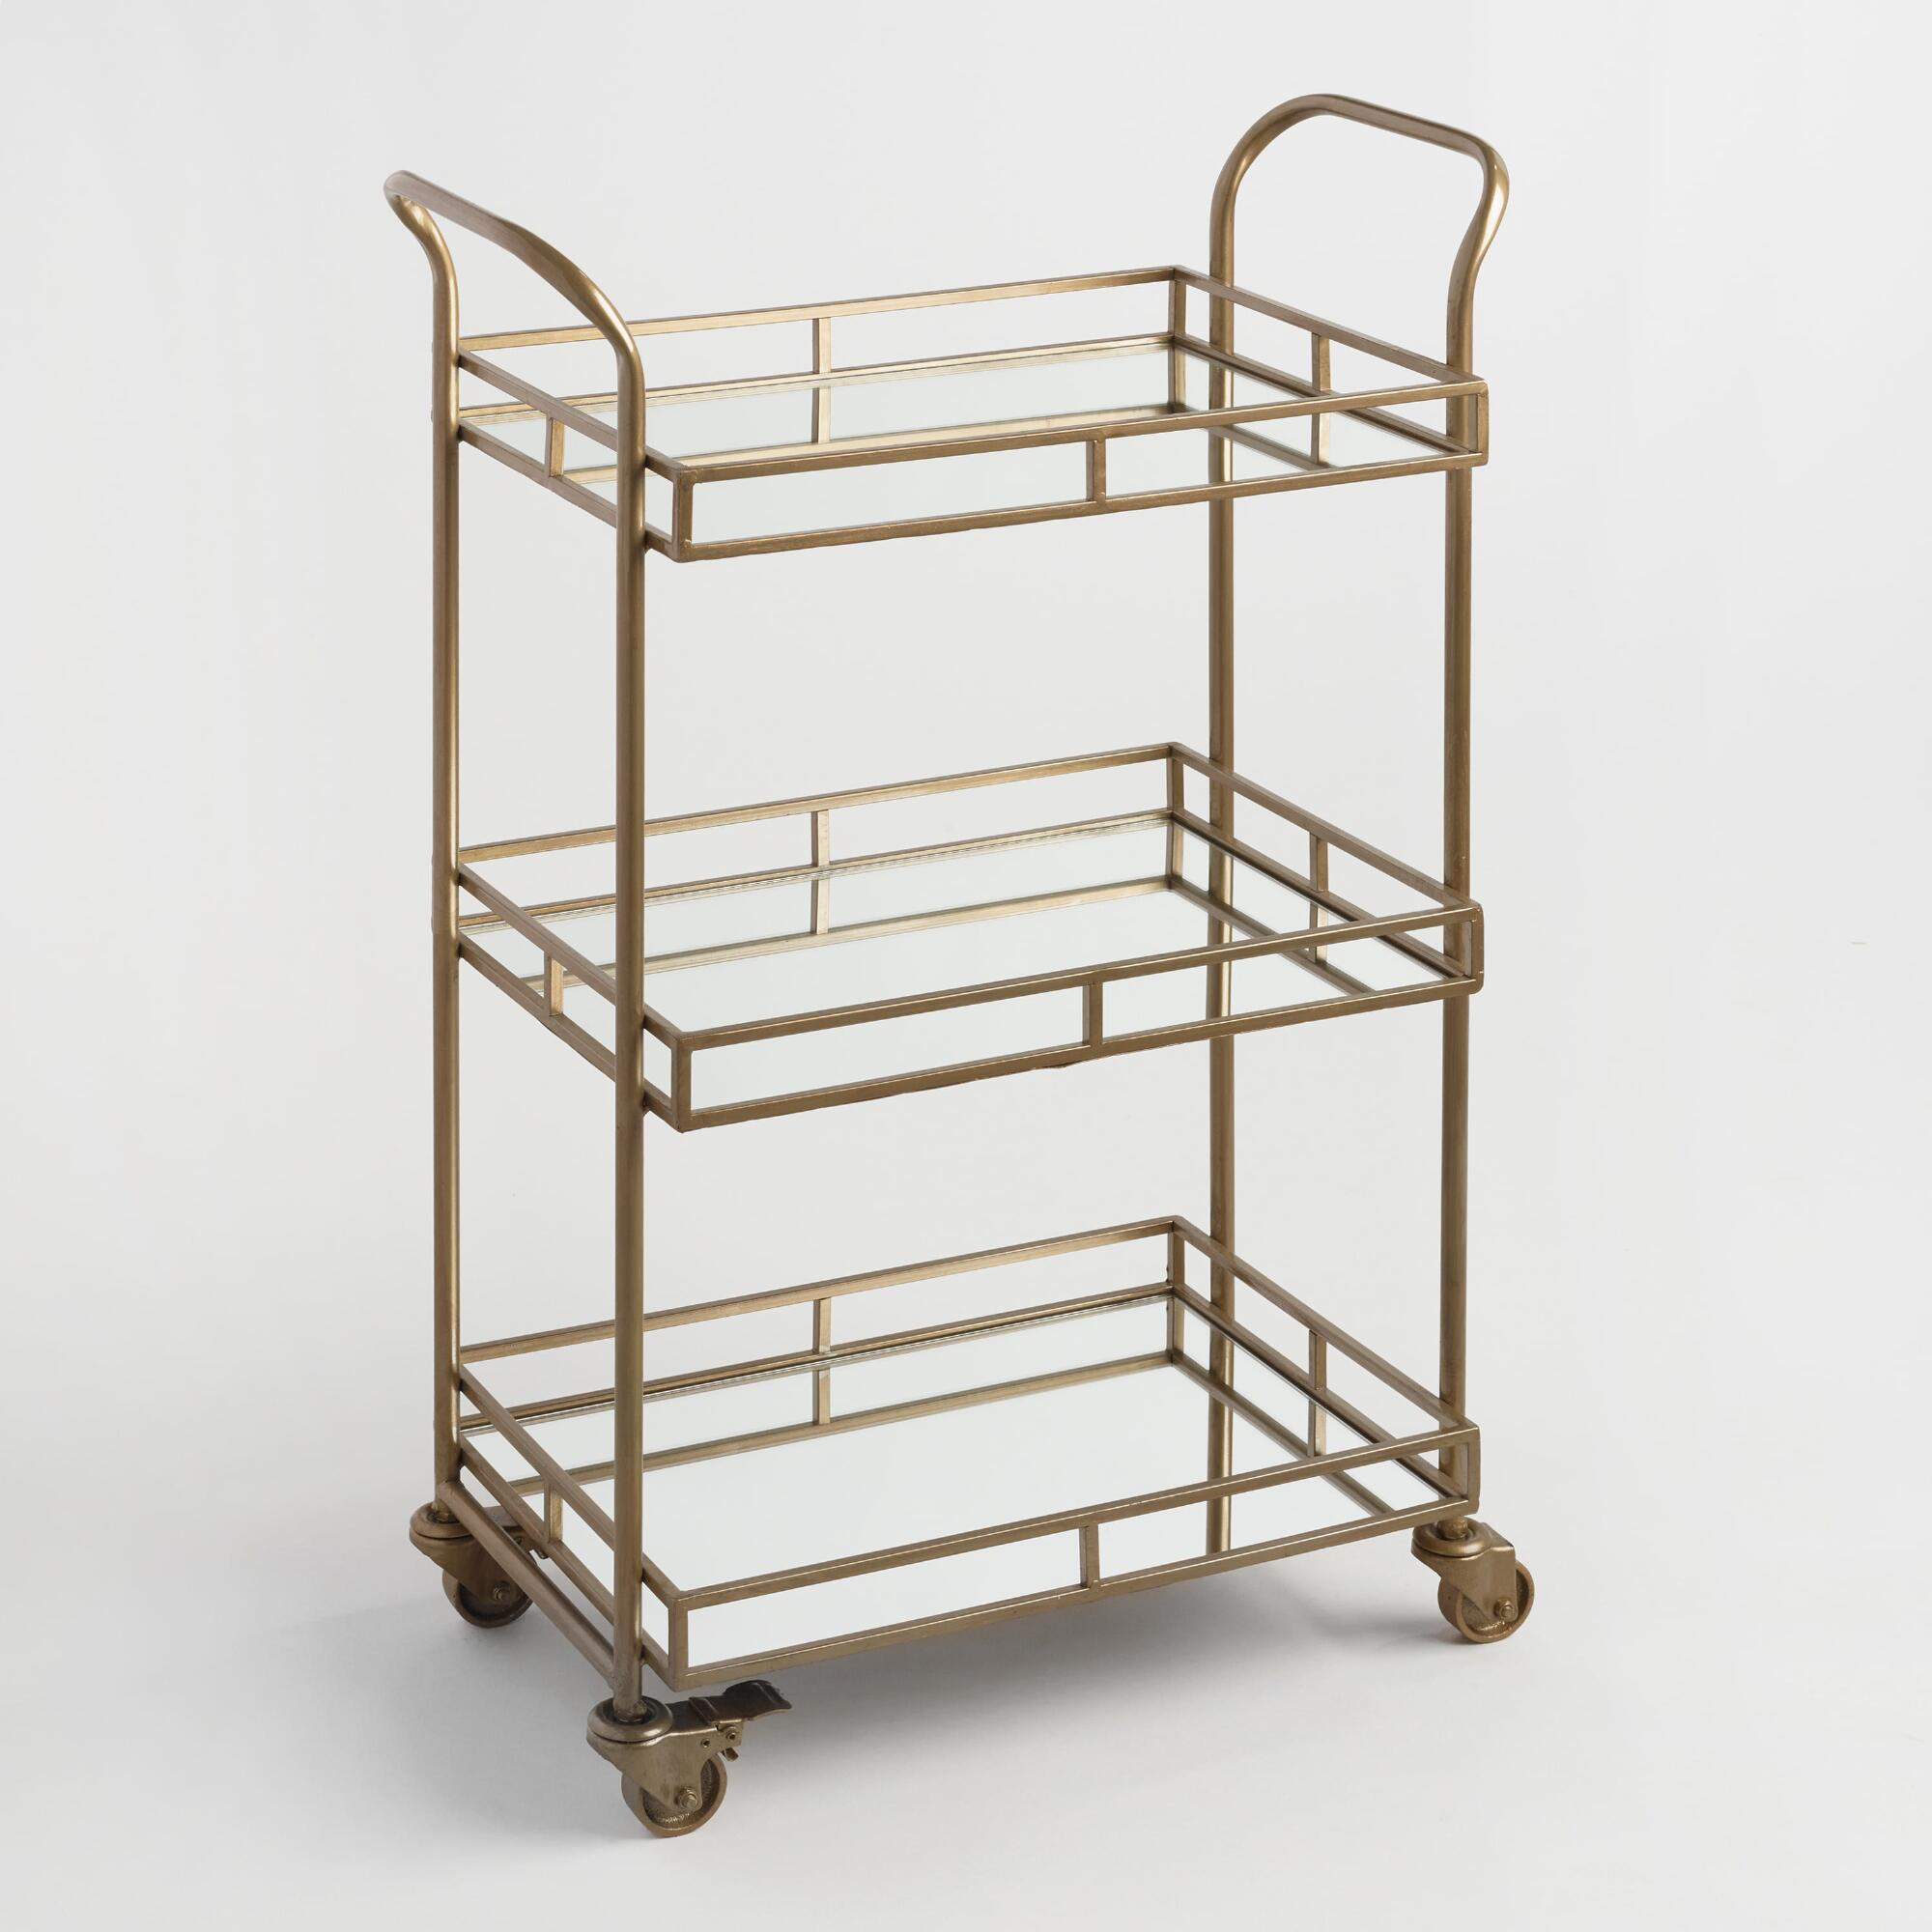 3 tier cart with wheels room essentials serve drinks in style with threetier bar cart featuring mirrored trays and an antiqued brass finish this portable fourwheel is perfect for parties